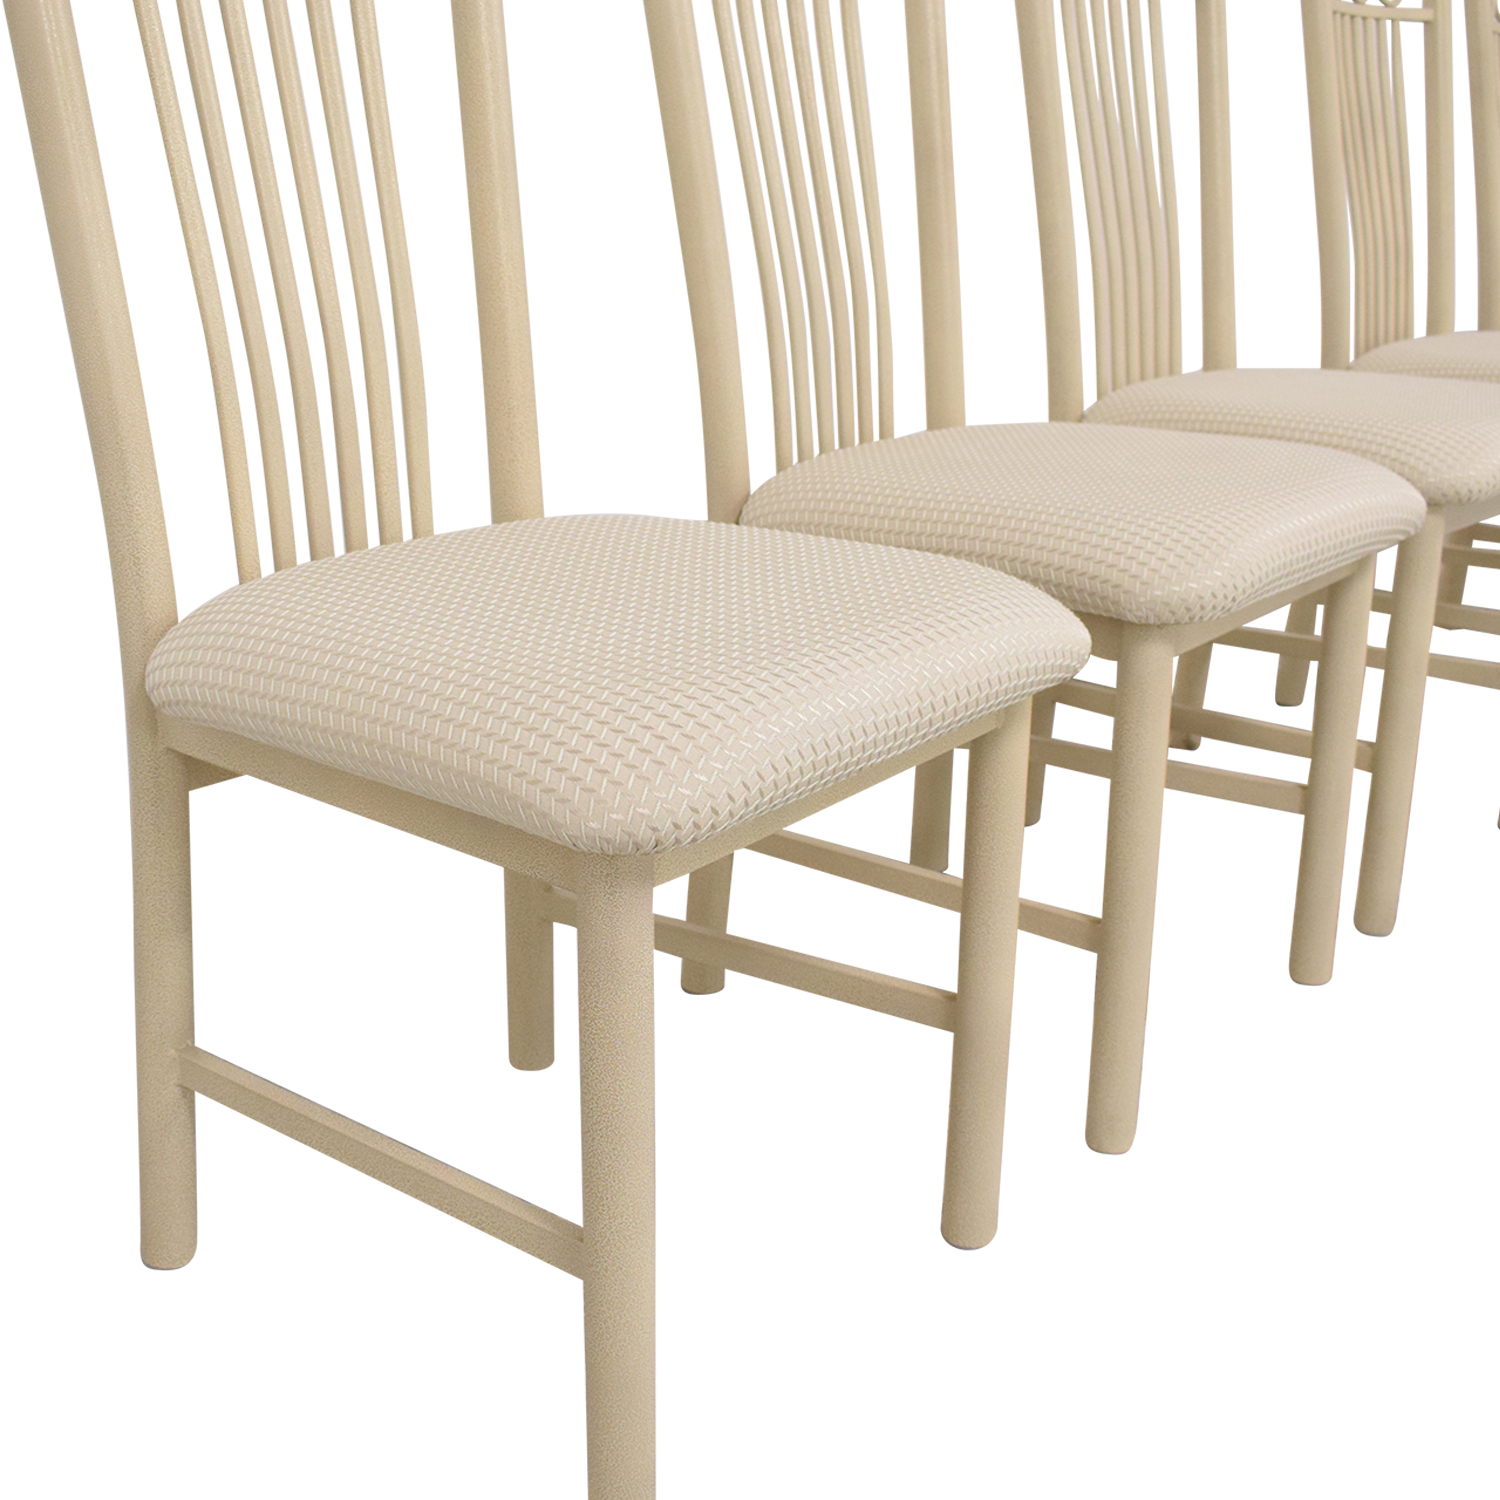 buy Raymour & Flanigan Dining Chairs Raymour & Flanigan Chairs